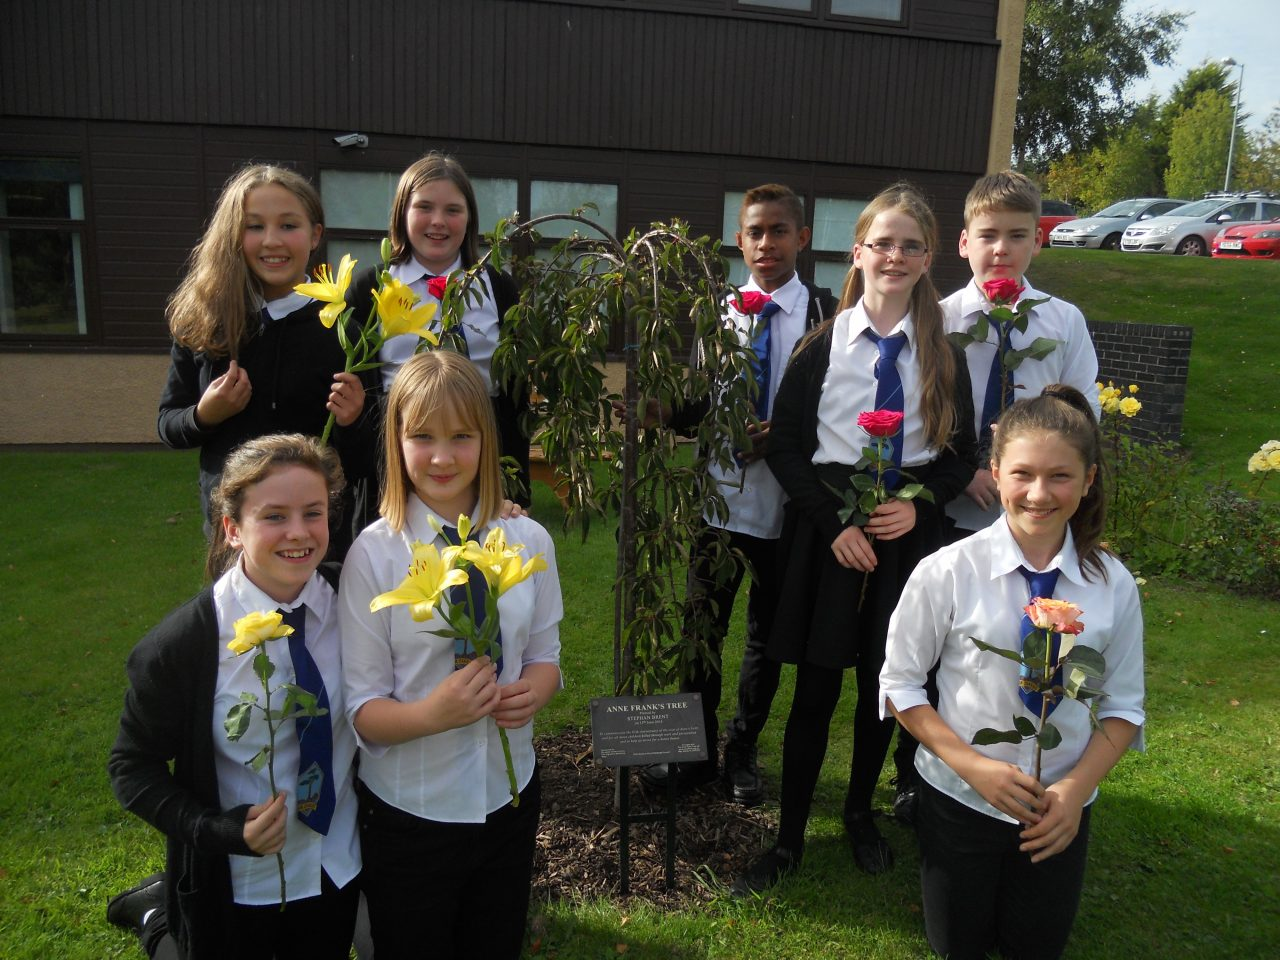 HMDT Blog: Preparations for HMD 2016 – Firrhill High School